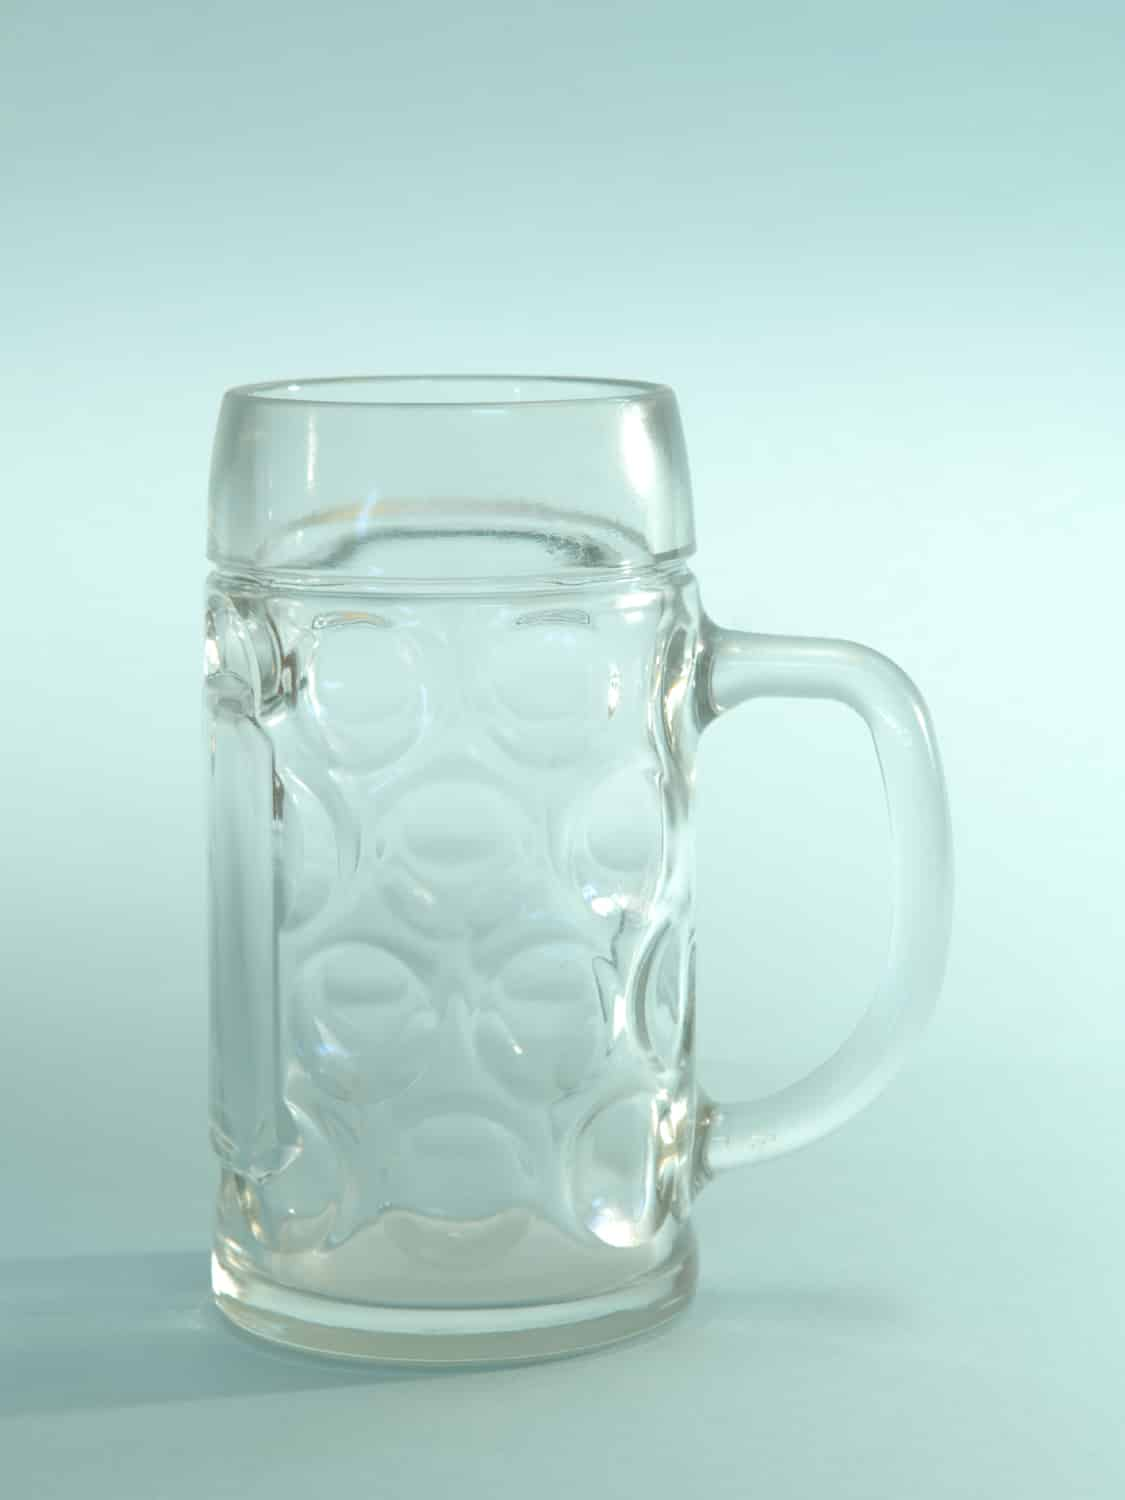 Sugar glass Beer stein, transparent. Content 0.5 liters. Height x Width: 16.4 x 8.5 cm.